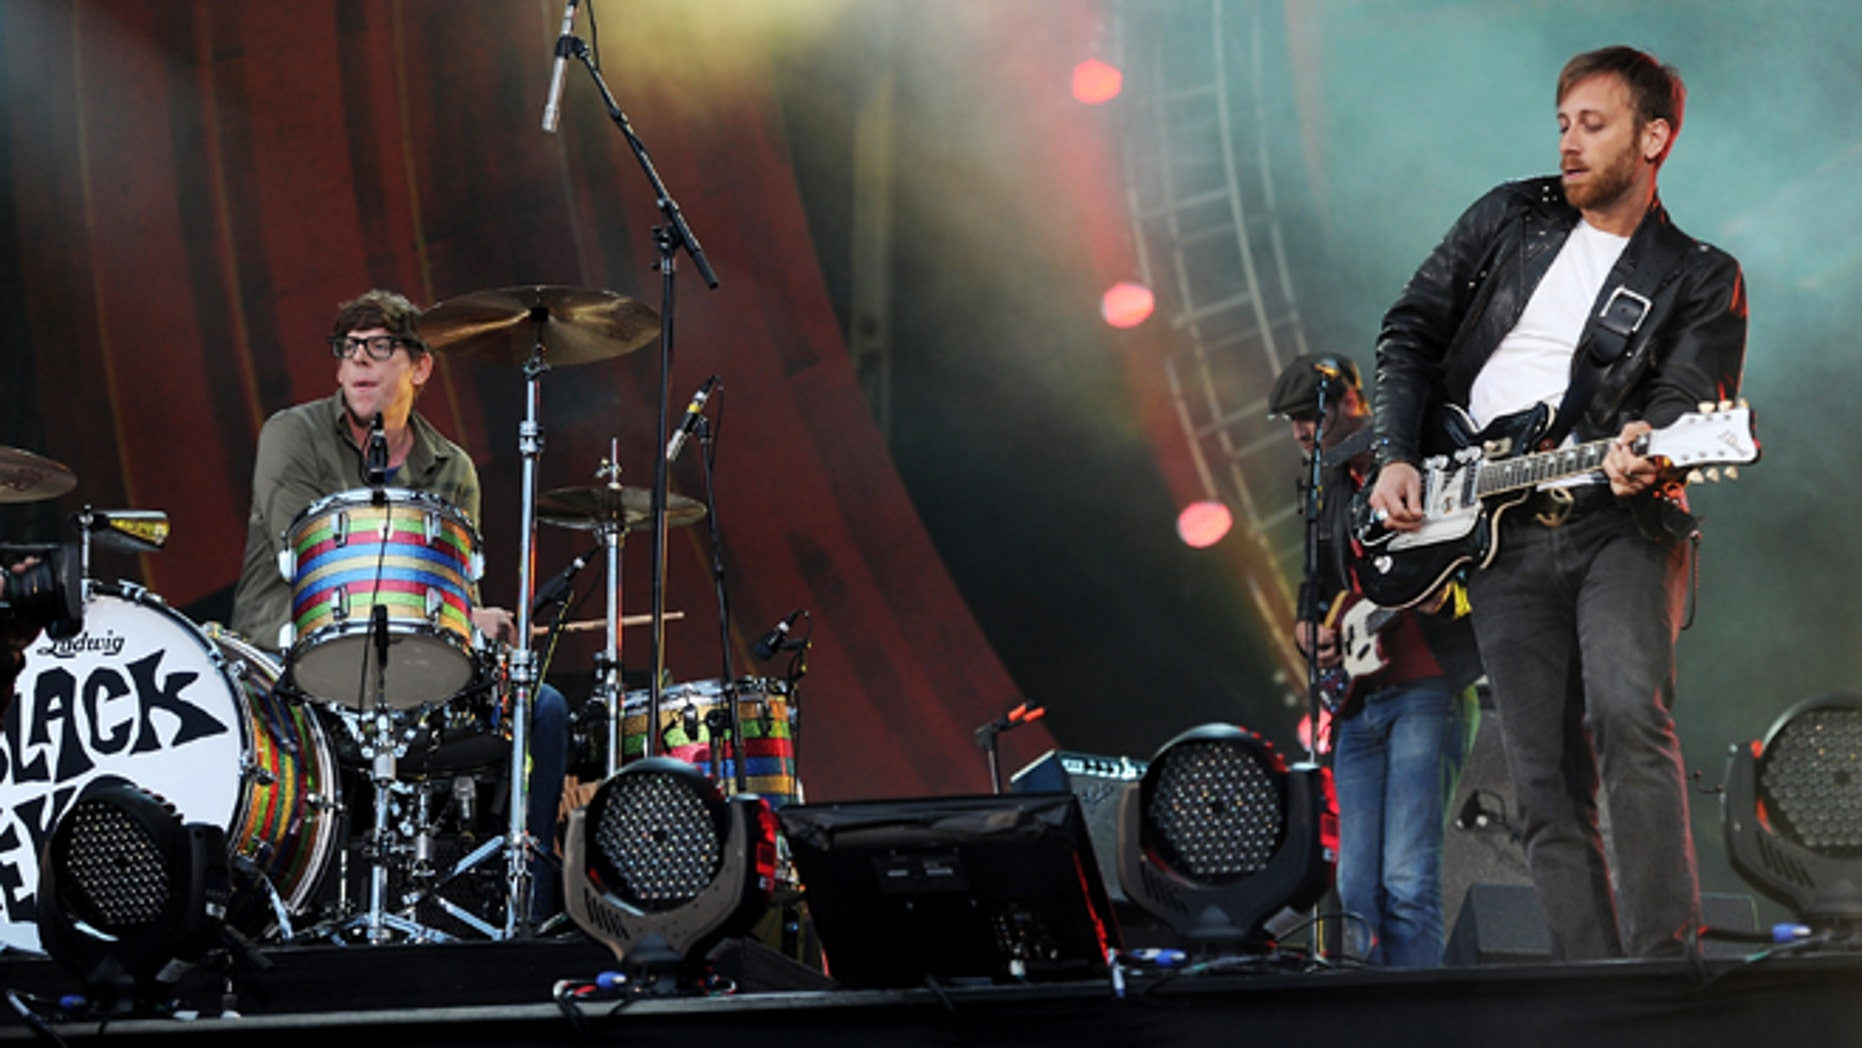 Sept. 29, 2012: Guitarist Dan Auerbach, right, and drummer Patrick Carney of The Black Keys perform at the Global Citizen Festival in Central Park.